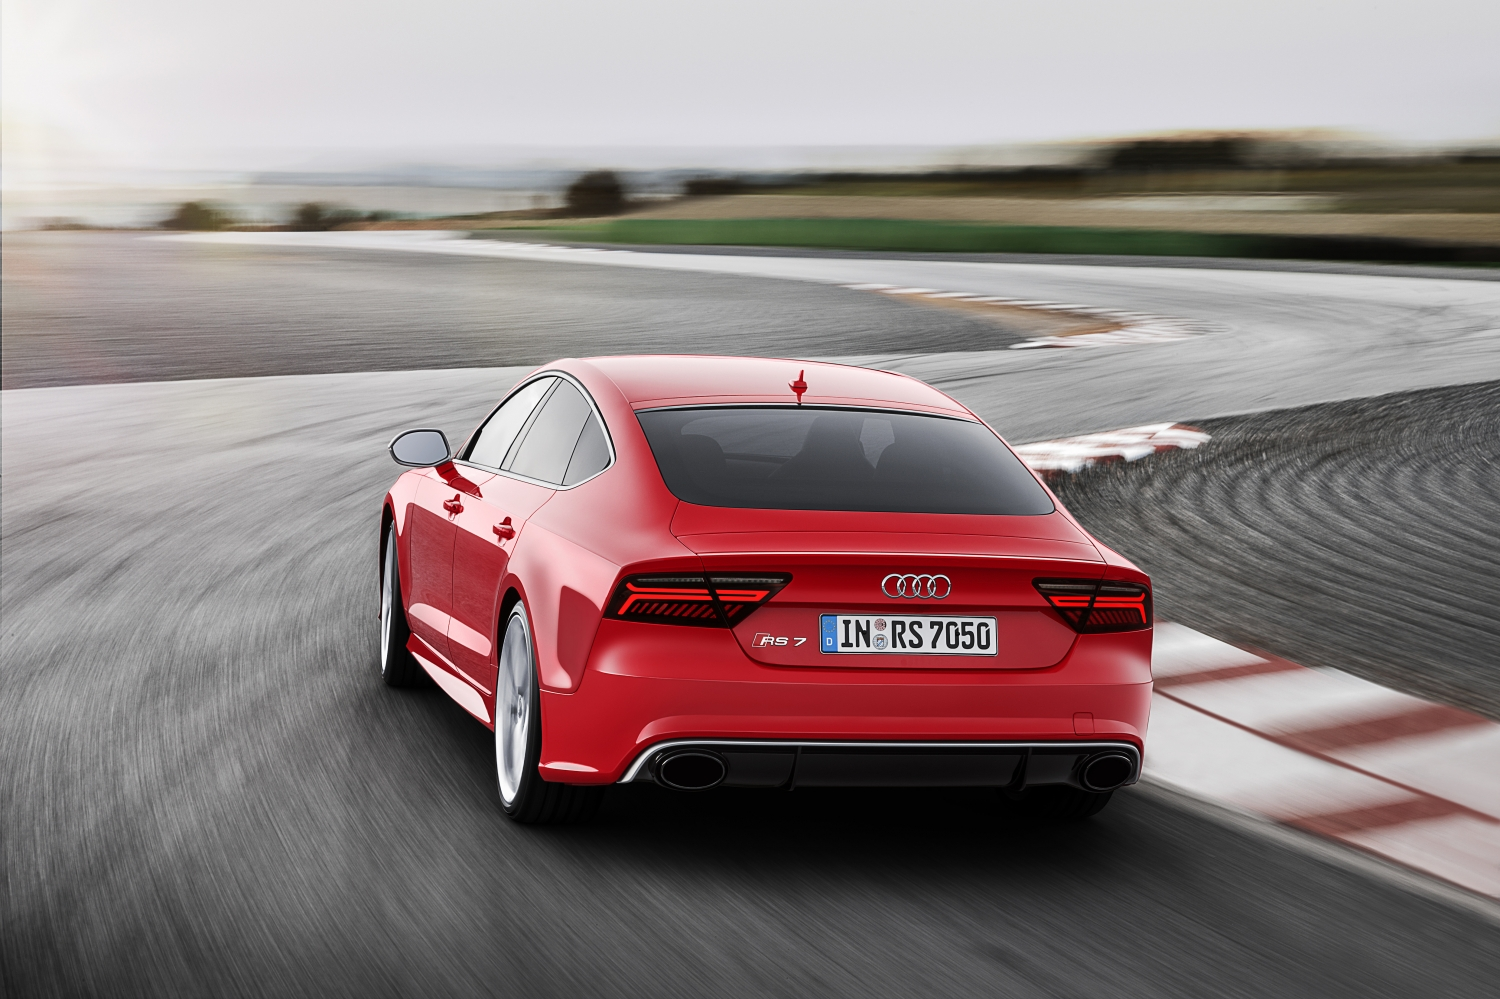 the all new audi rs7 sportback is the david beckham of cars  it is a killer  athlete on the field and a fashion icon on the red carpets